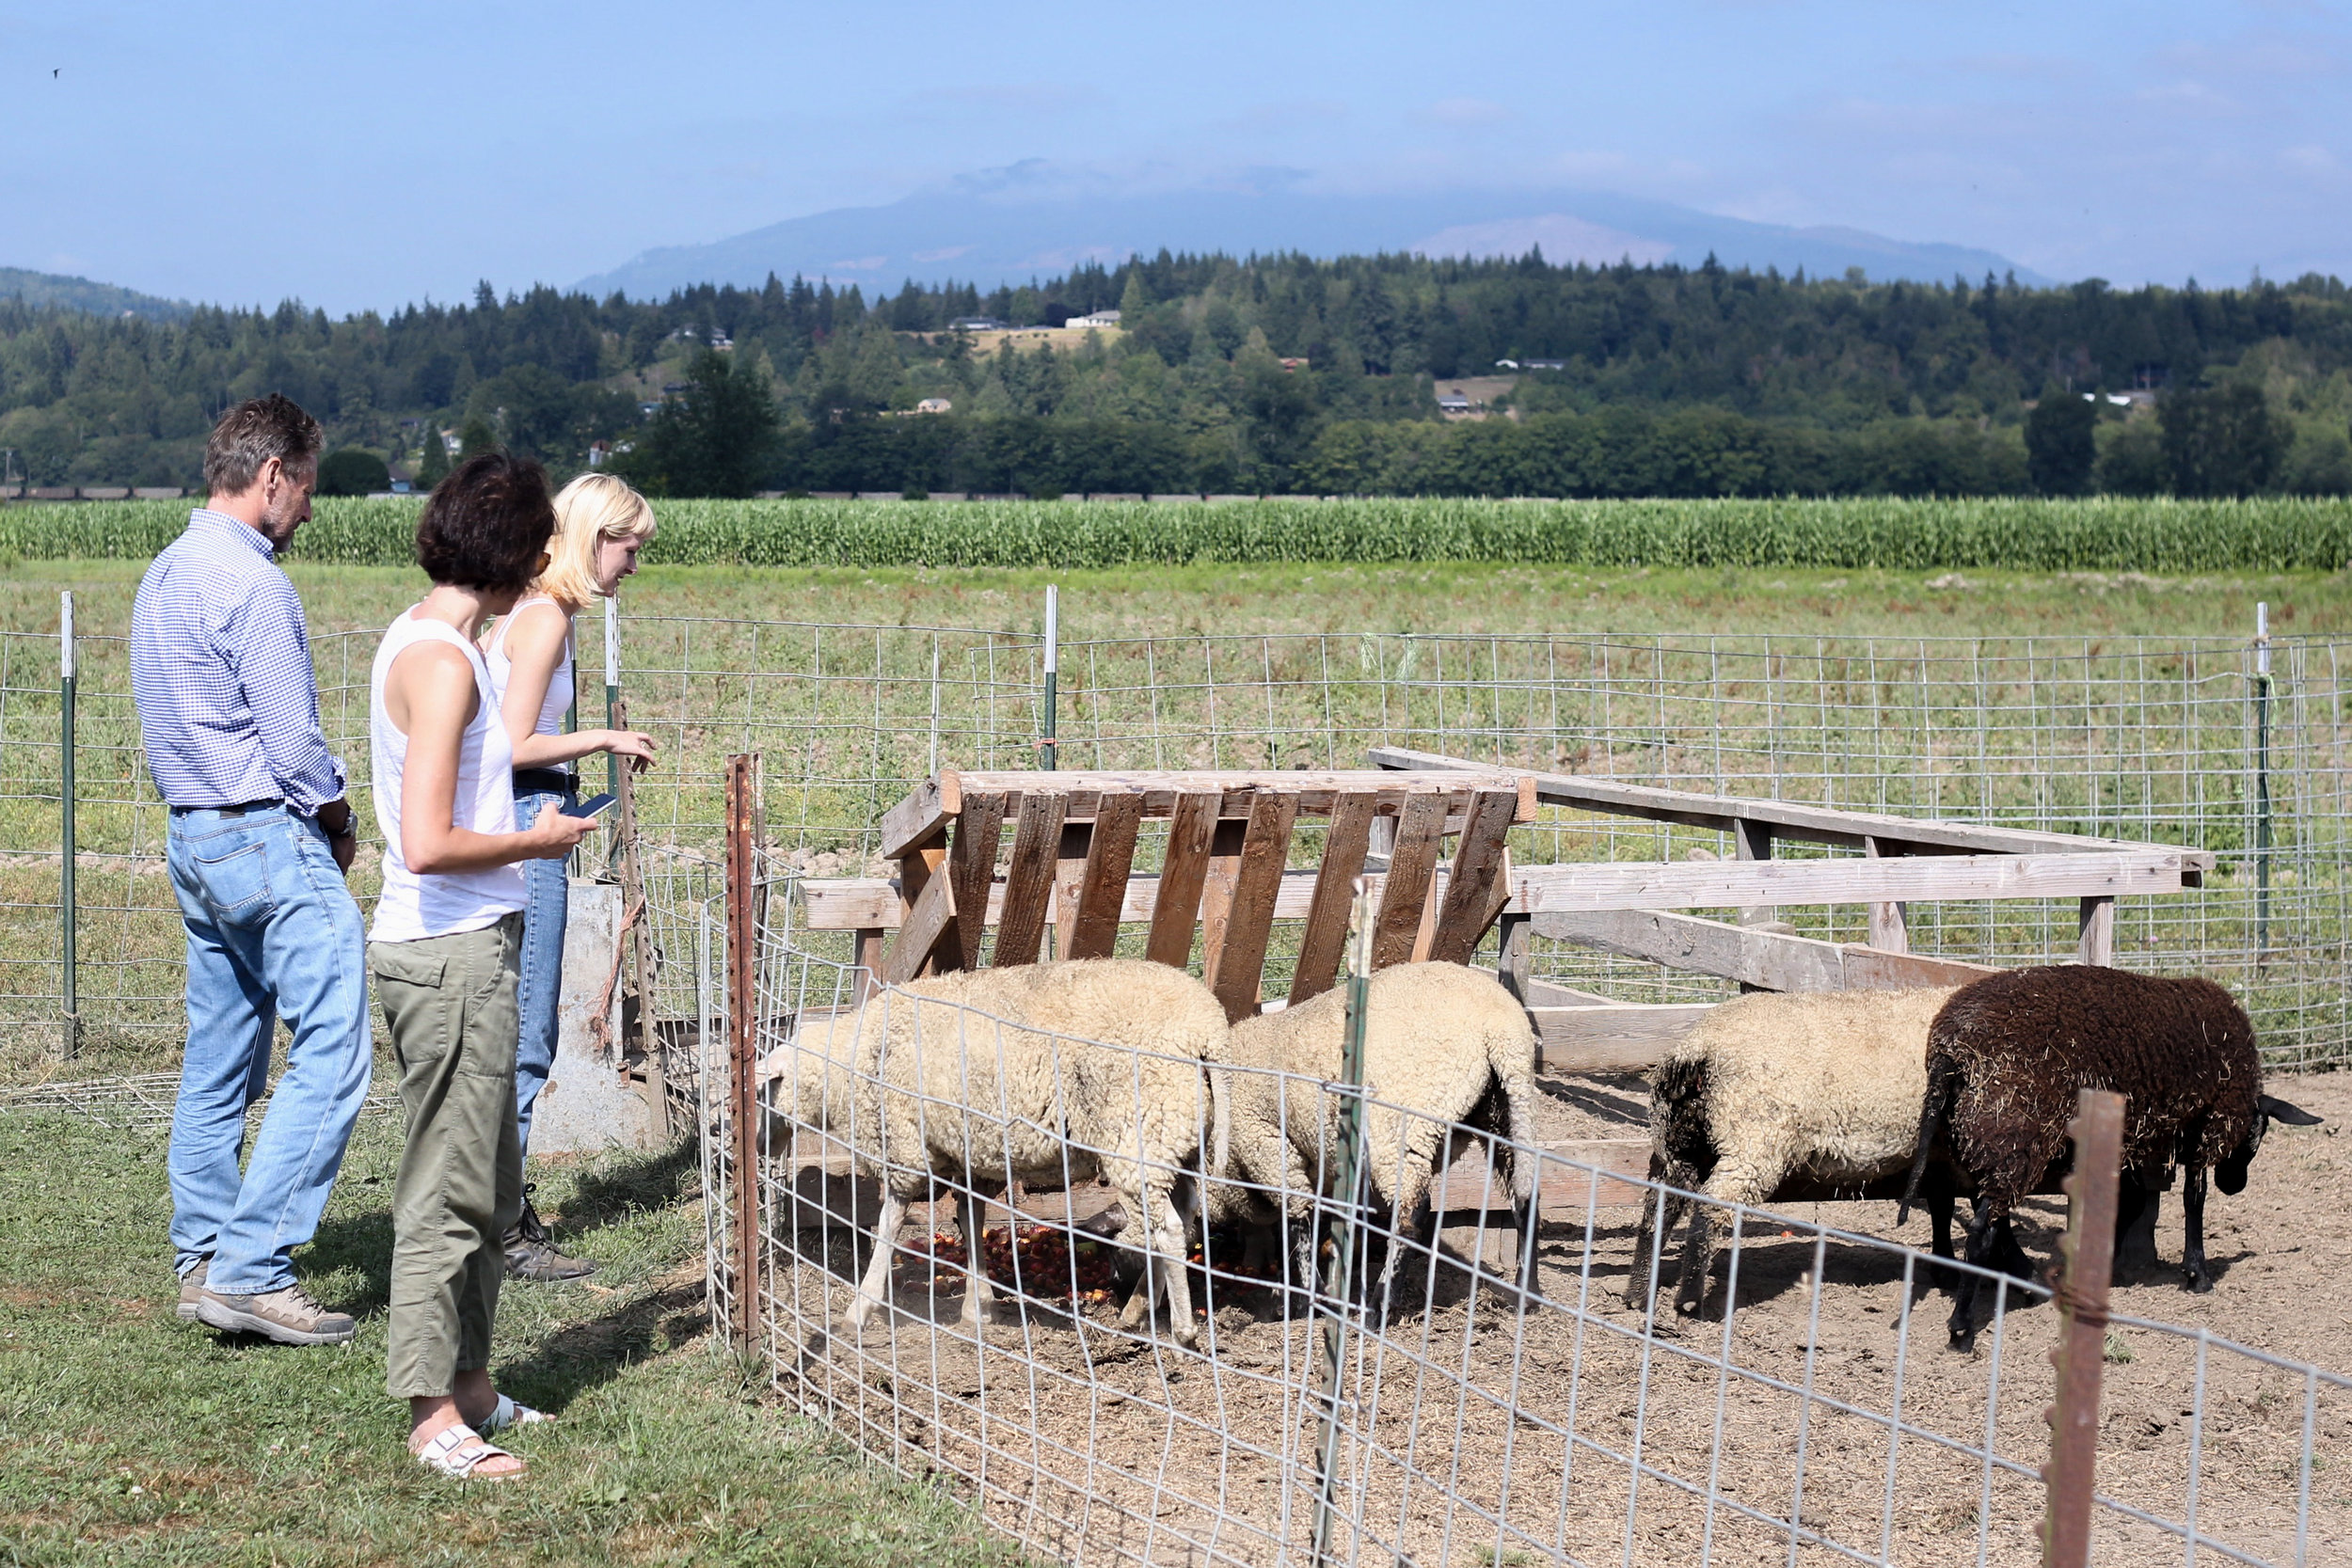 Visiting with the sheep and pigs at Samish Bay Cheese was one of the best parts of the trip.